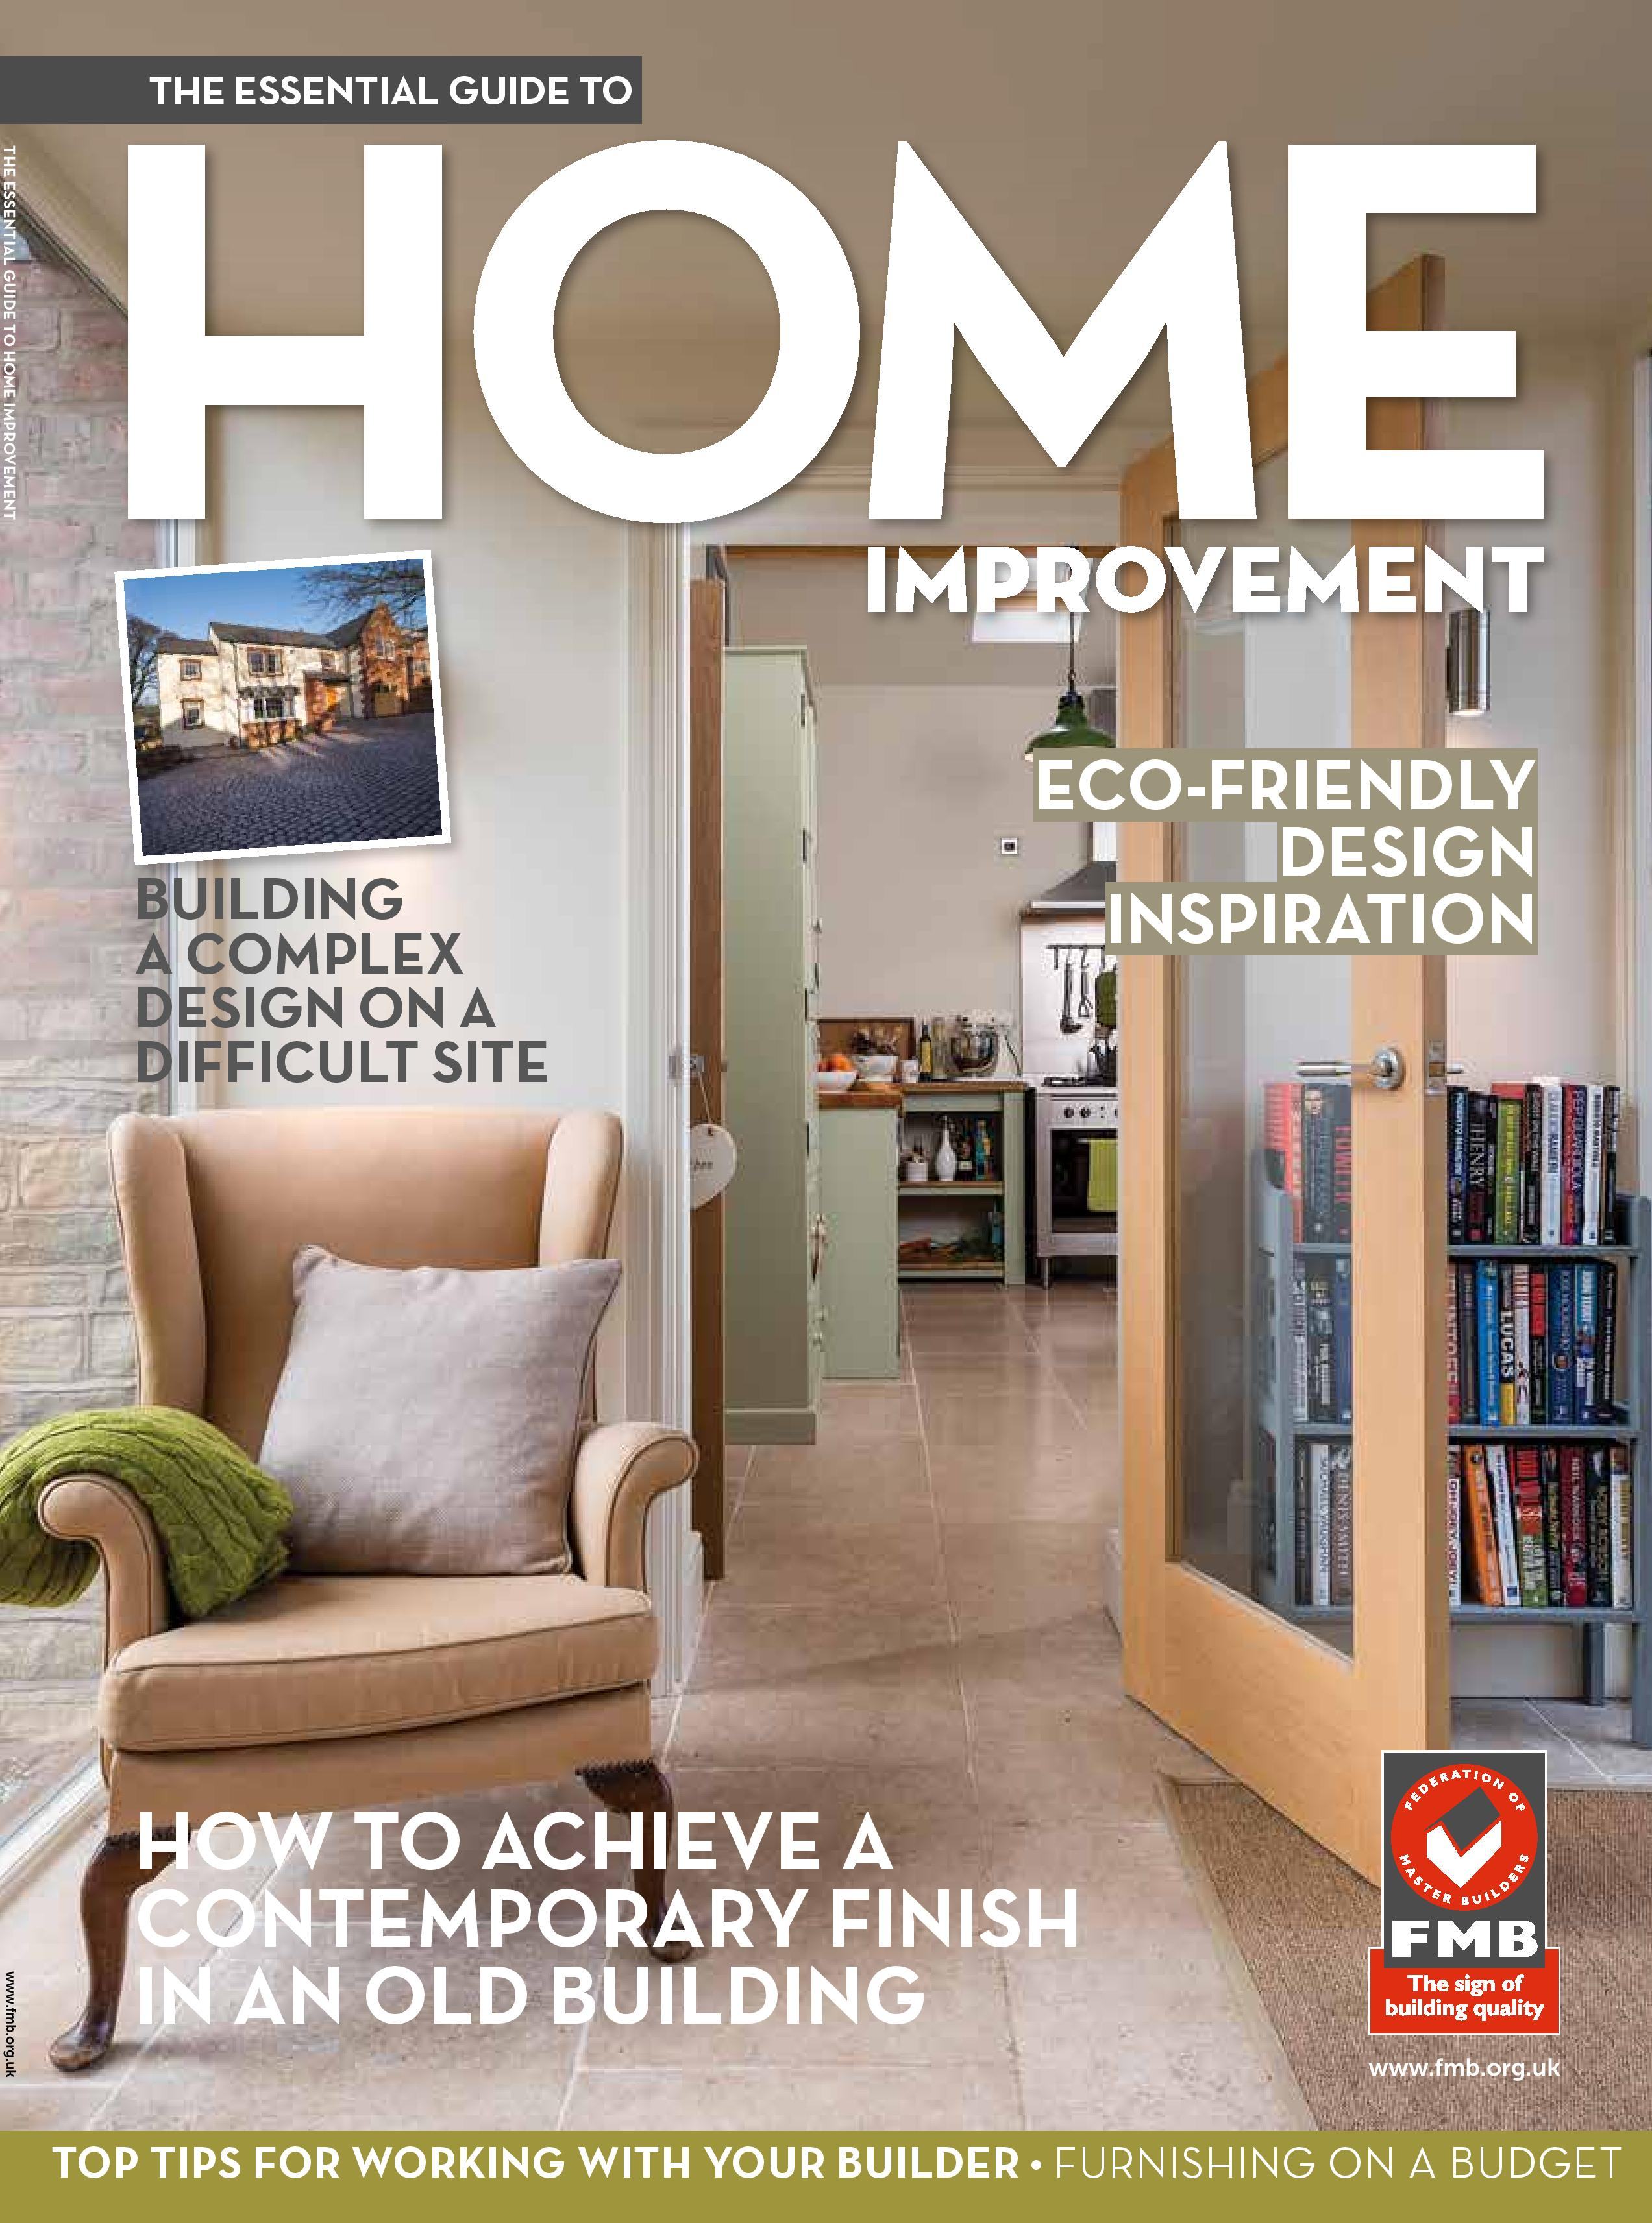 Home Improvement Essential Guide Homeowners Alliance